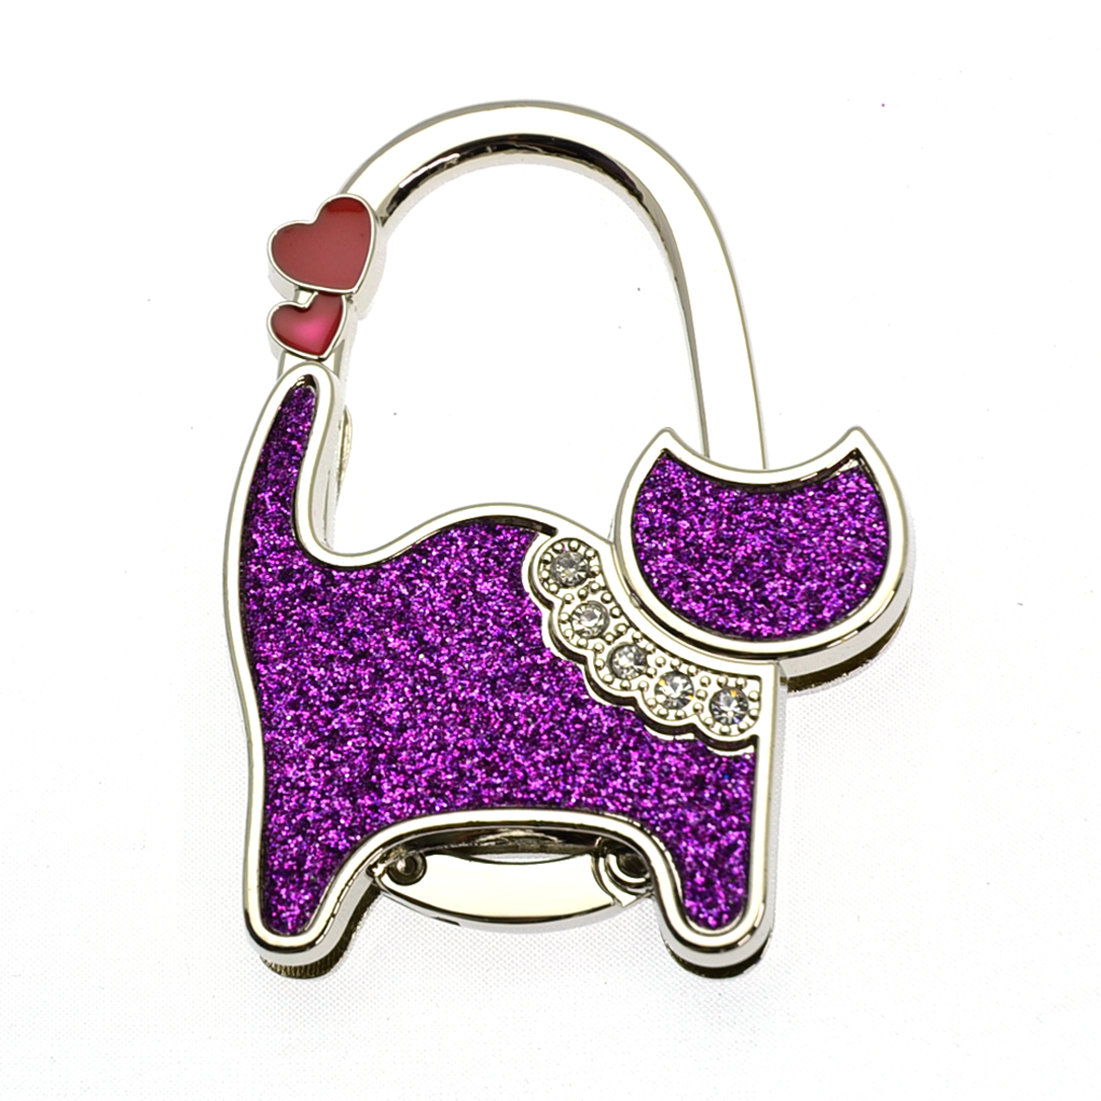 Textured Metal Cat Shape Handbag Bag Purse Hanger Table Hook Shimmery